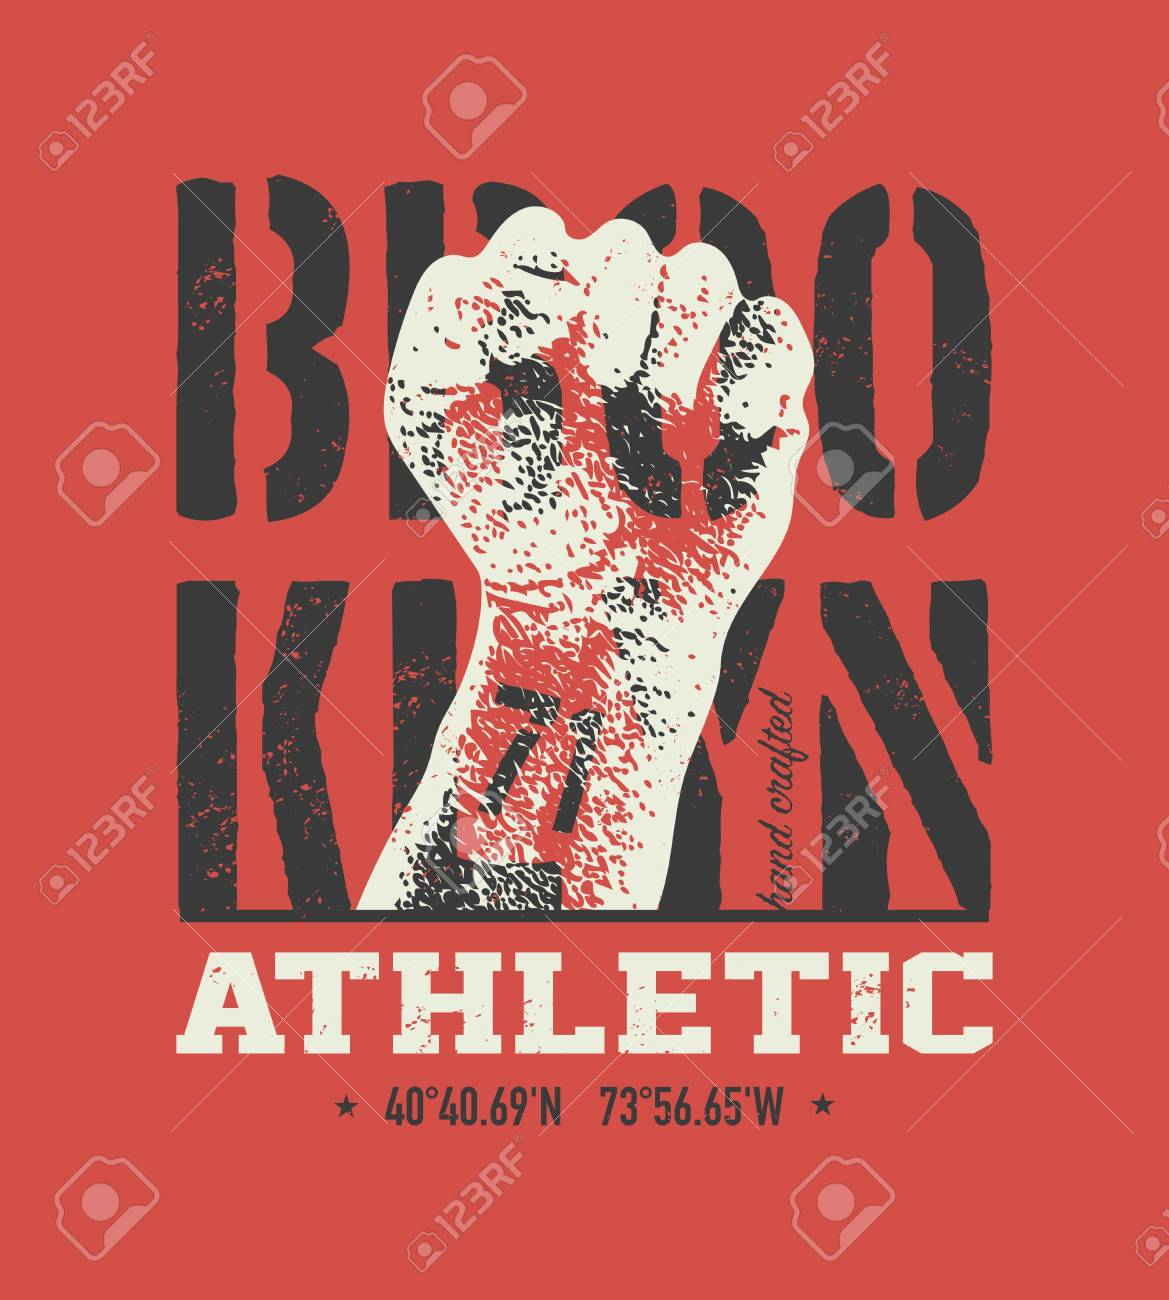 b260afd04 vintage urban typography, t-shirt graphics, vector illustration Stock  Illustration - 89016928